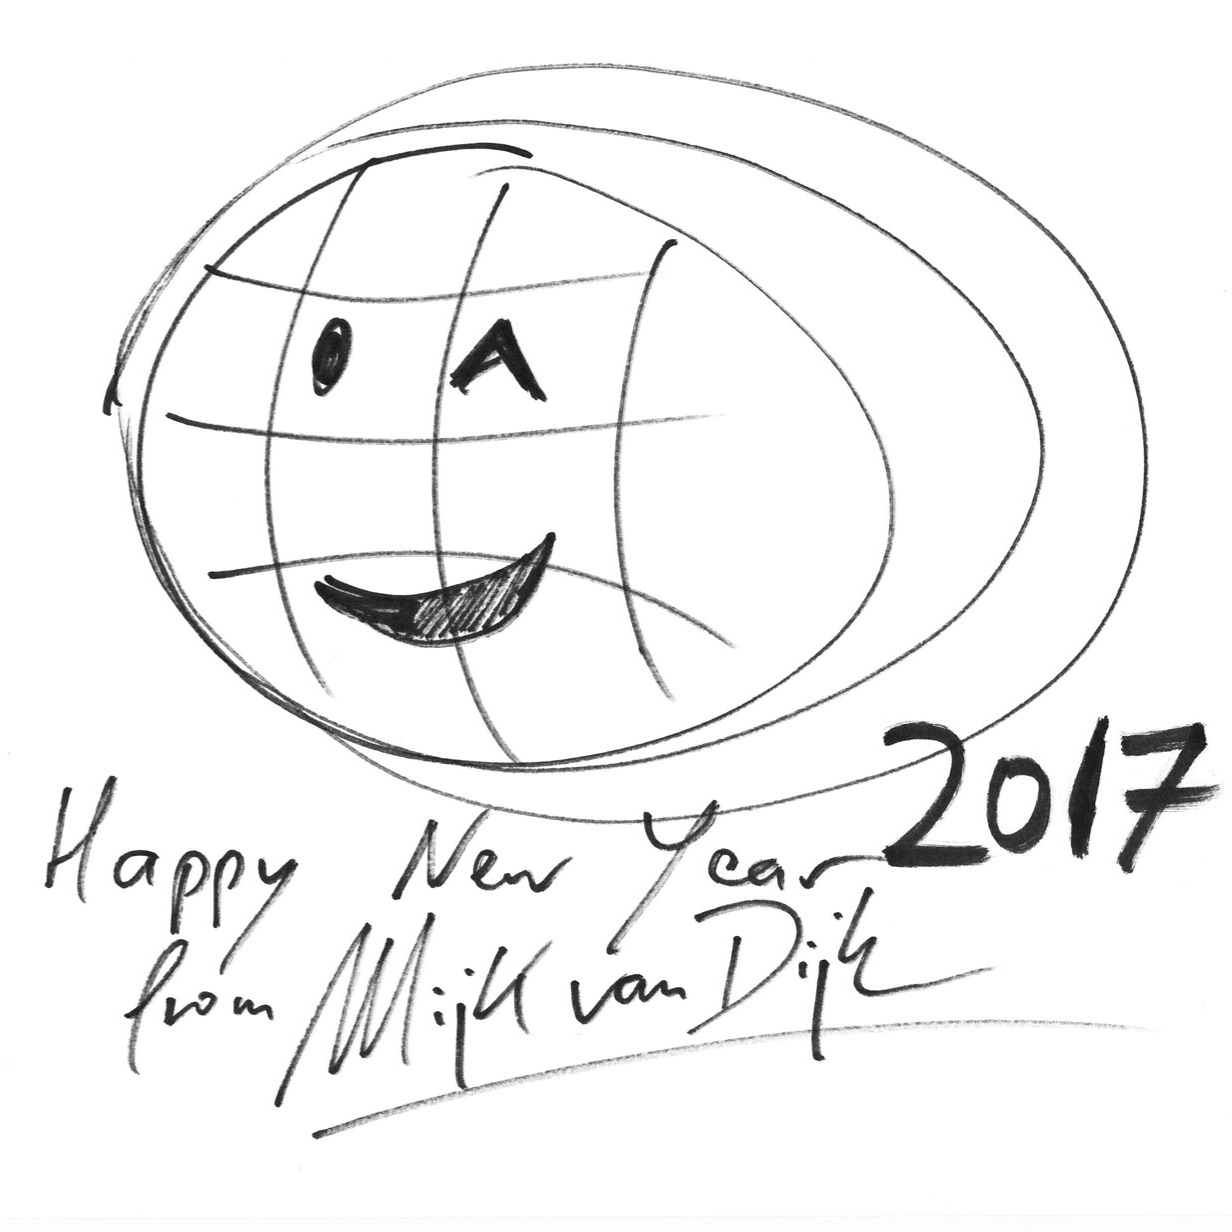 I wish us all a better 2017!